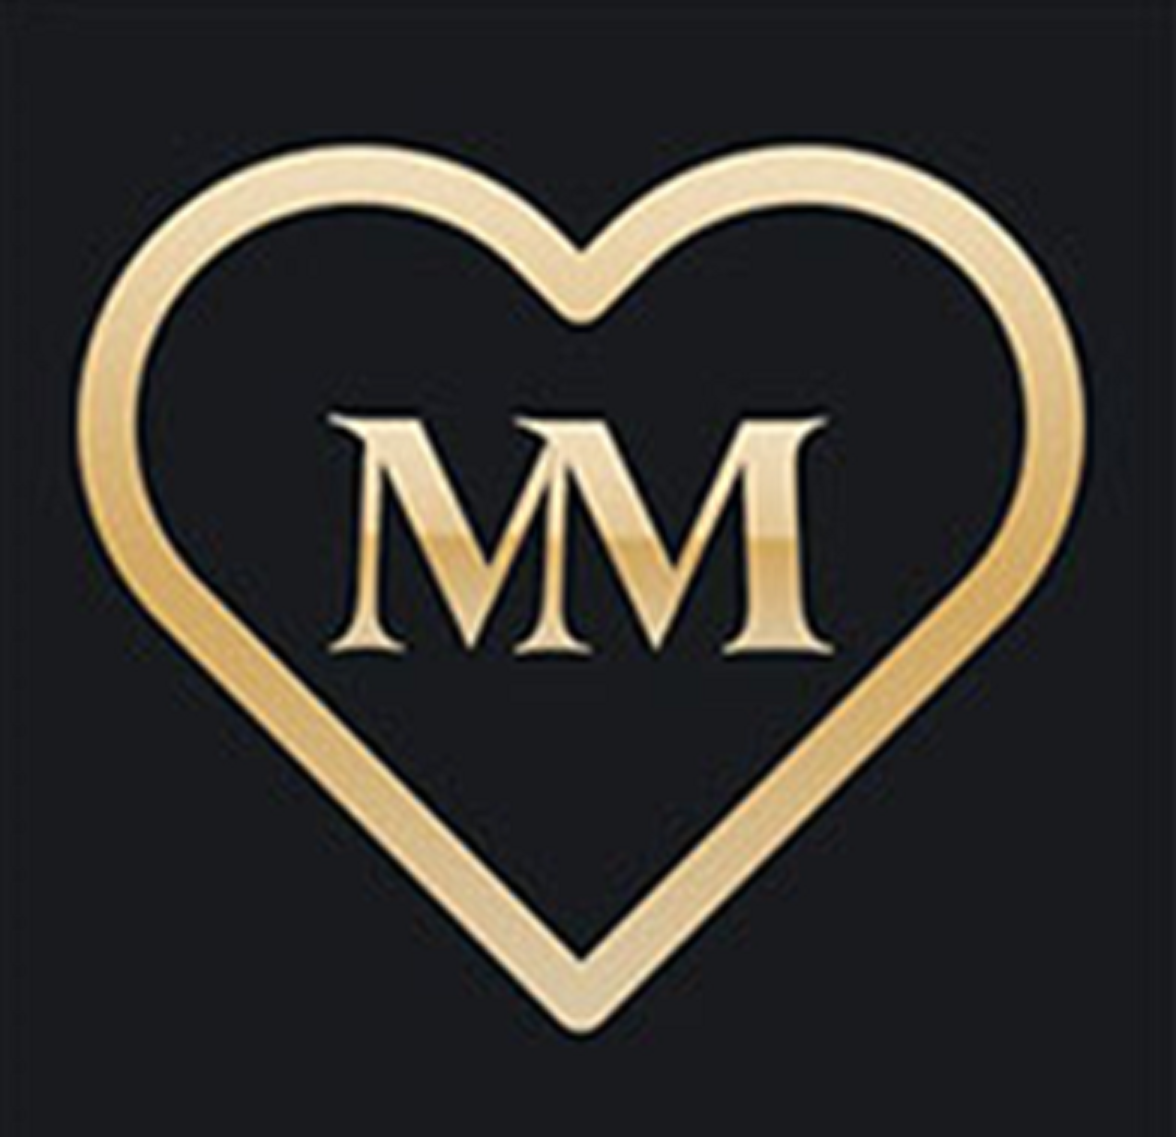 Millionaire Match is an online dating platform where any